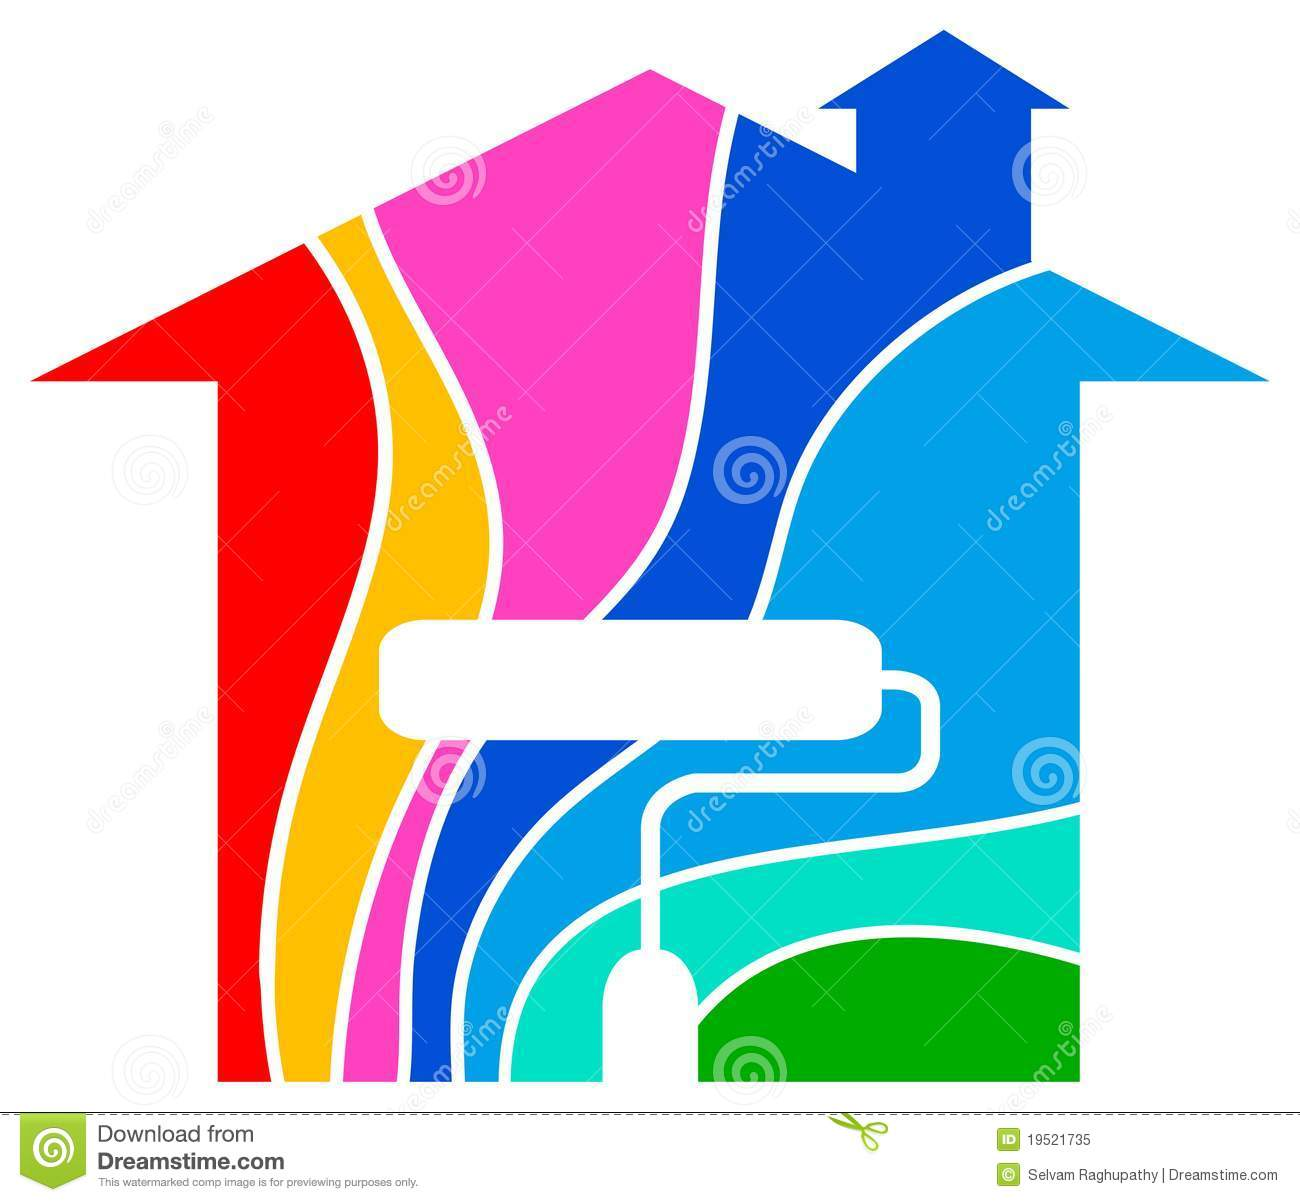 Home painting logo royalty free stock photo image 19521735 for Painting and decorating logo ideas